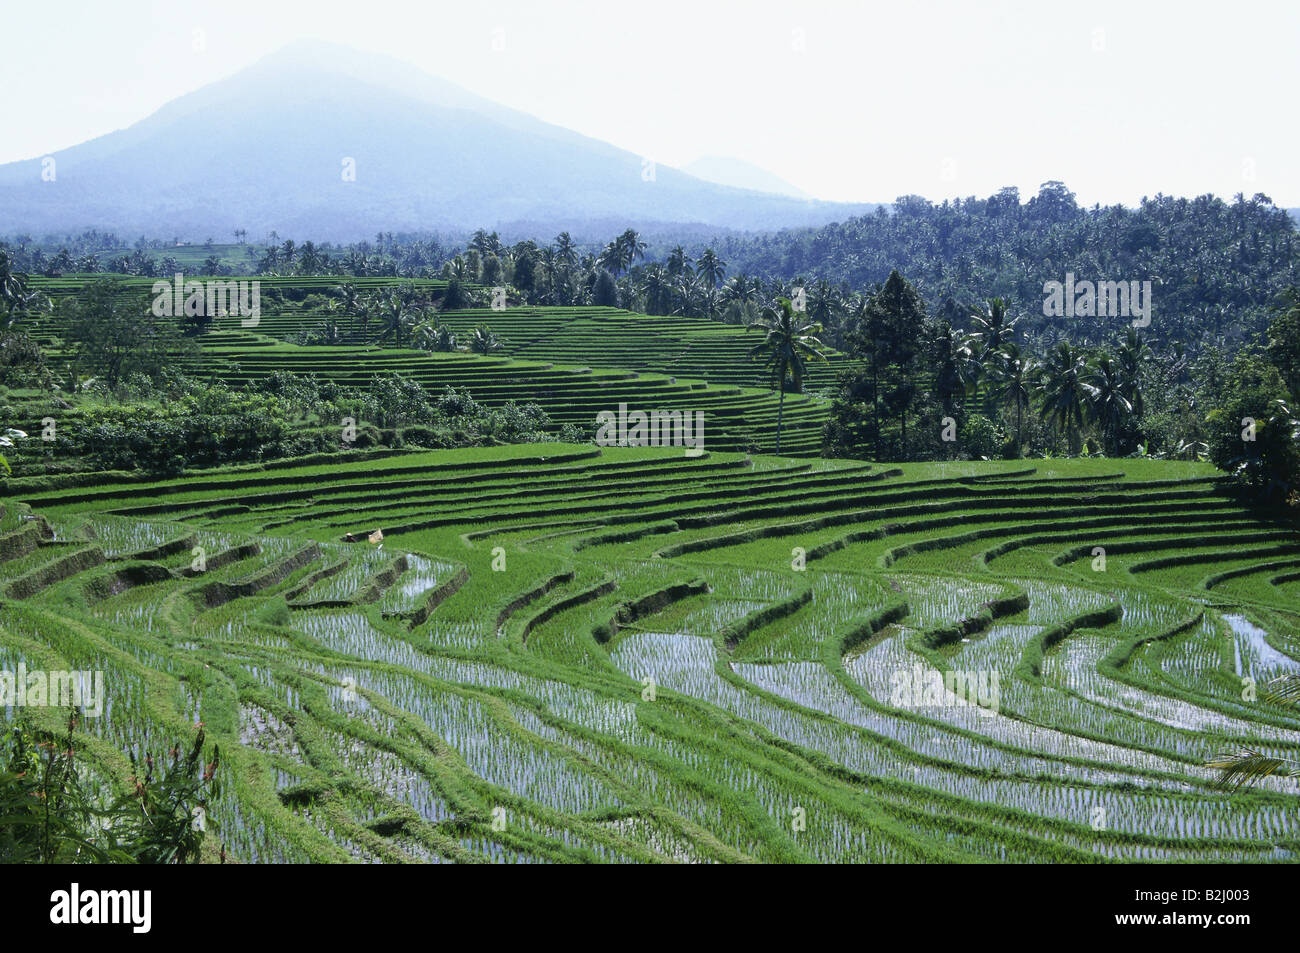 geography / travel, Indonesia, Bali, agriculture / farming, rice terraces at Ampadan, Mount Batukau, rice cultivation, - Stock Image